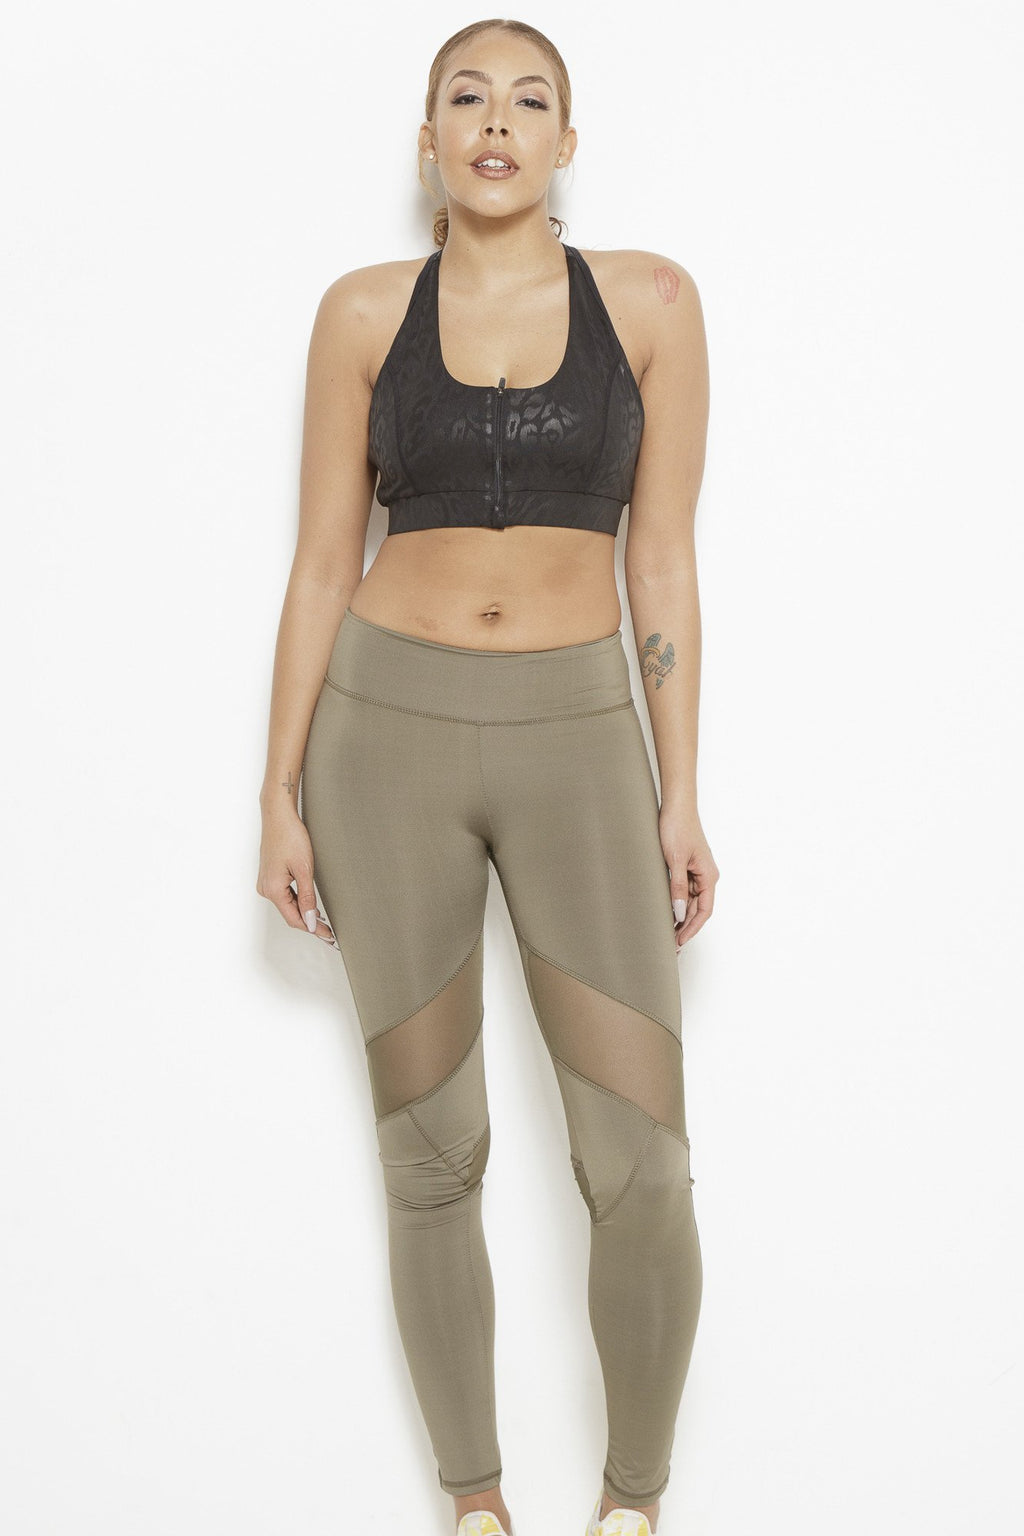 fair-shade - Dream In Code Active Leggings- Olive Green - Clothing